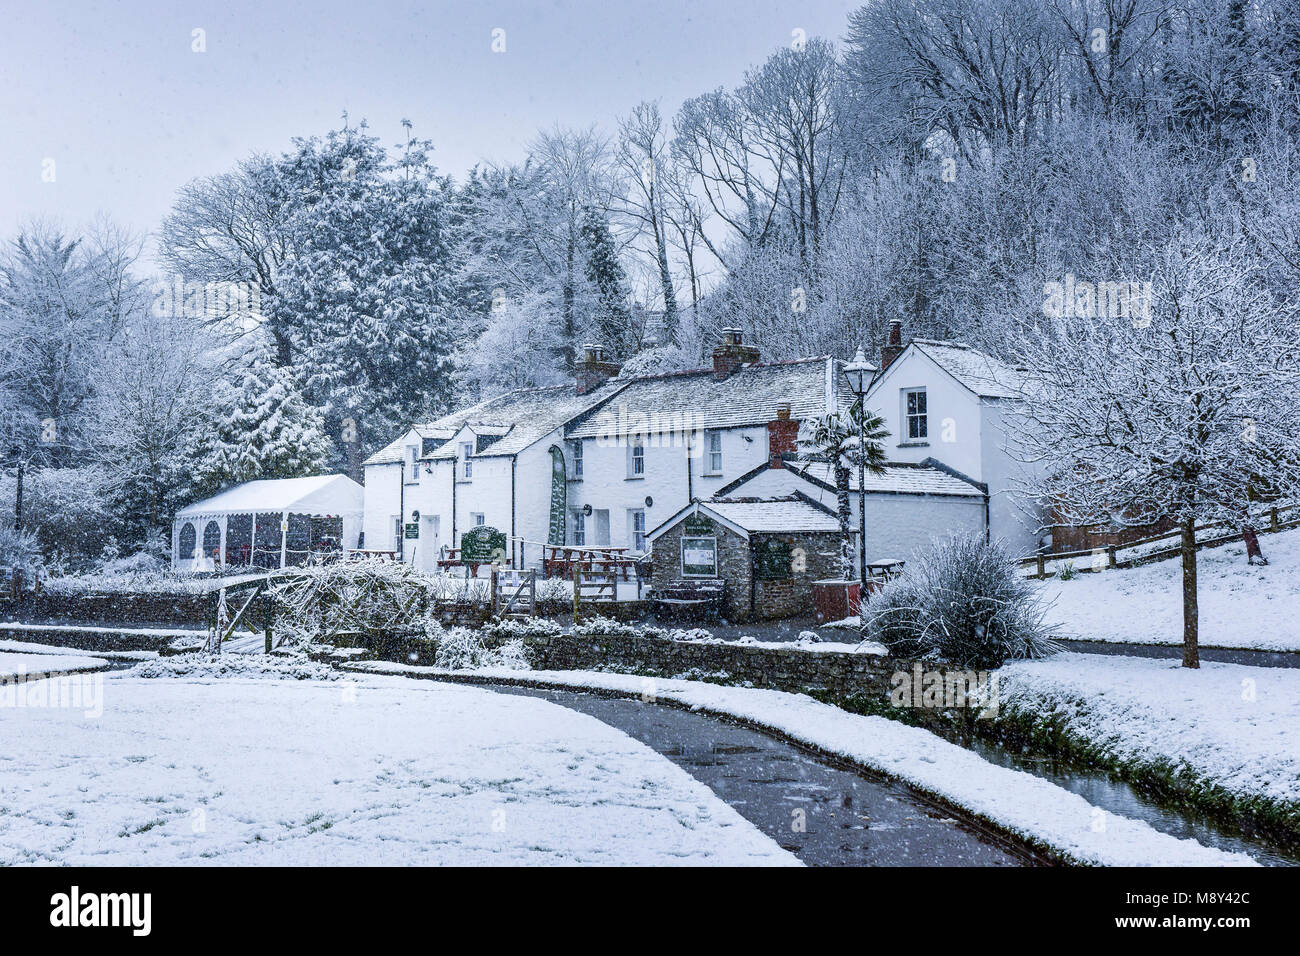 Snowing over the Trenance Heritage Cottages in Trenance Gardens Newquay Cornwall. - Stock Image